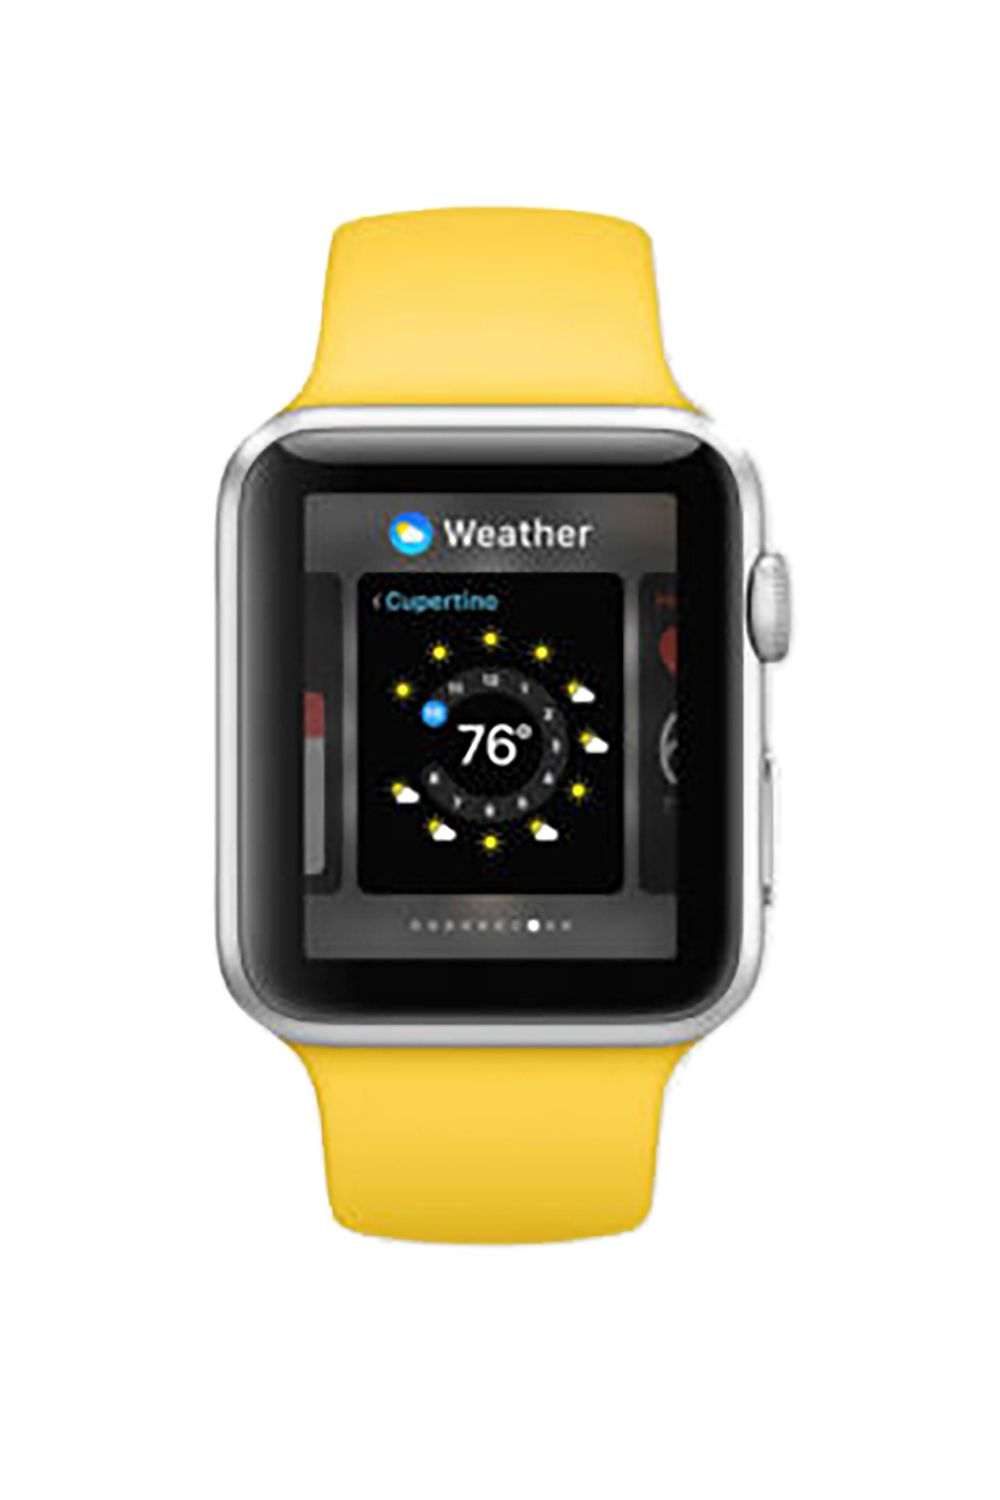 "<p>The long-awaited update to the Apple Watch is rumored to hit shelves this September along with the iPhone 7. According to <a href=""http://www.wareable.com/smartwatches/next-gen-smartwatches-coming-2015-2016"" target=""_blank"">techie hearsay</a>, the new design will boast Wi-Fi capabilities, a FaceTime camera, a thinner screen, and a longer battery life. *Crosses fingers*</p><p><strong>More information <a href=""http://www.techradar.com/us/news/wearables/apple-watch-2-what-we-want-to-see-1289202"" target=""_blank"">here</a>.</strong></p>"